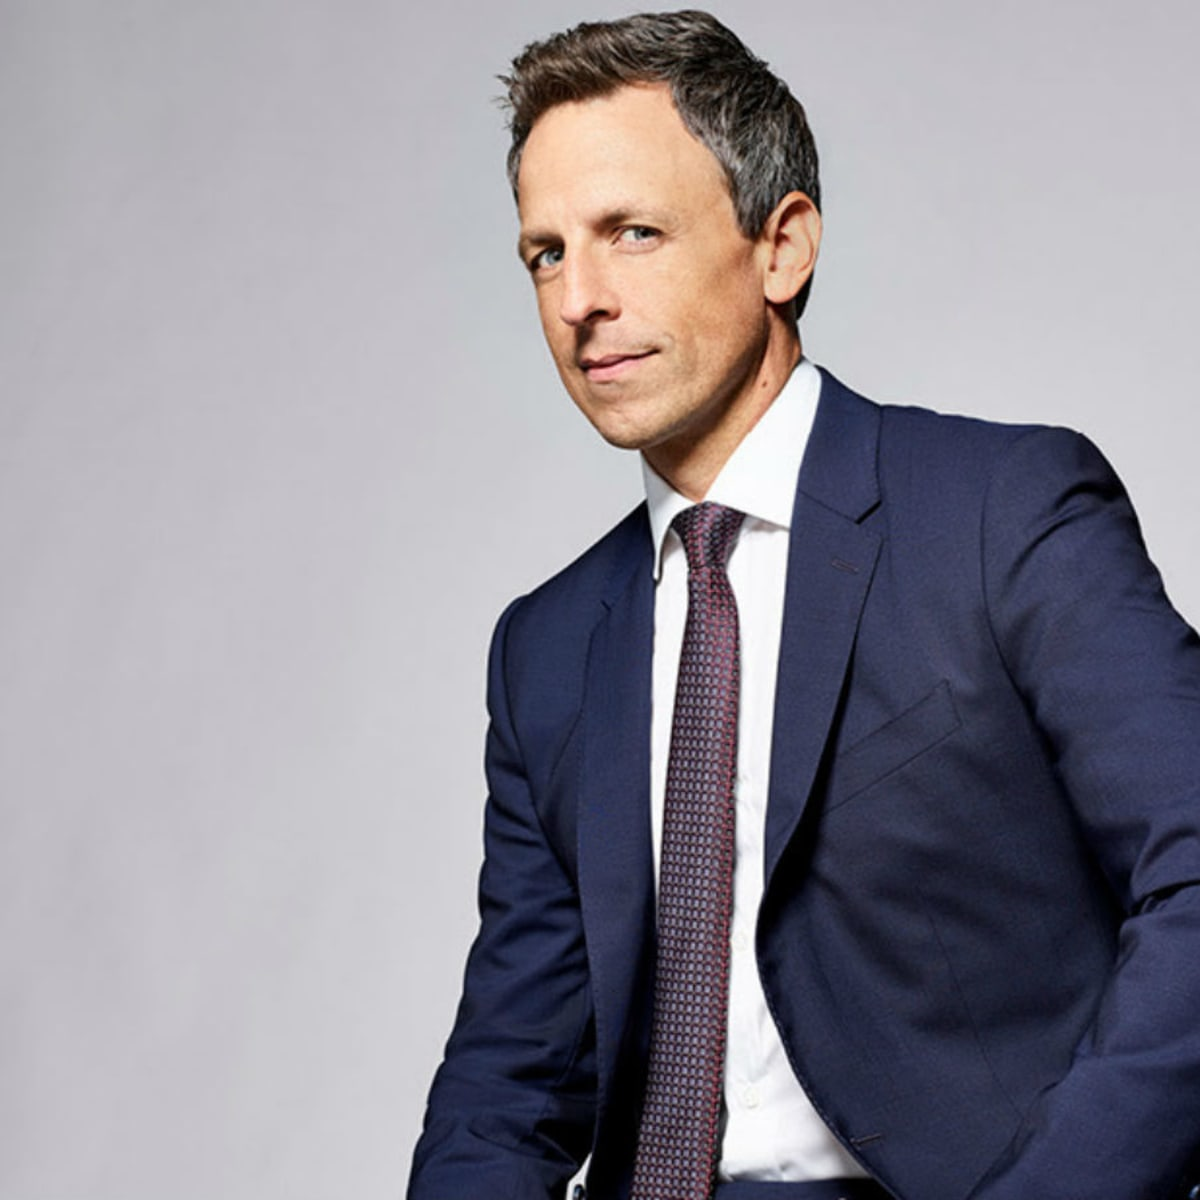 late night tv host Seth Meyers